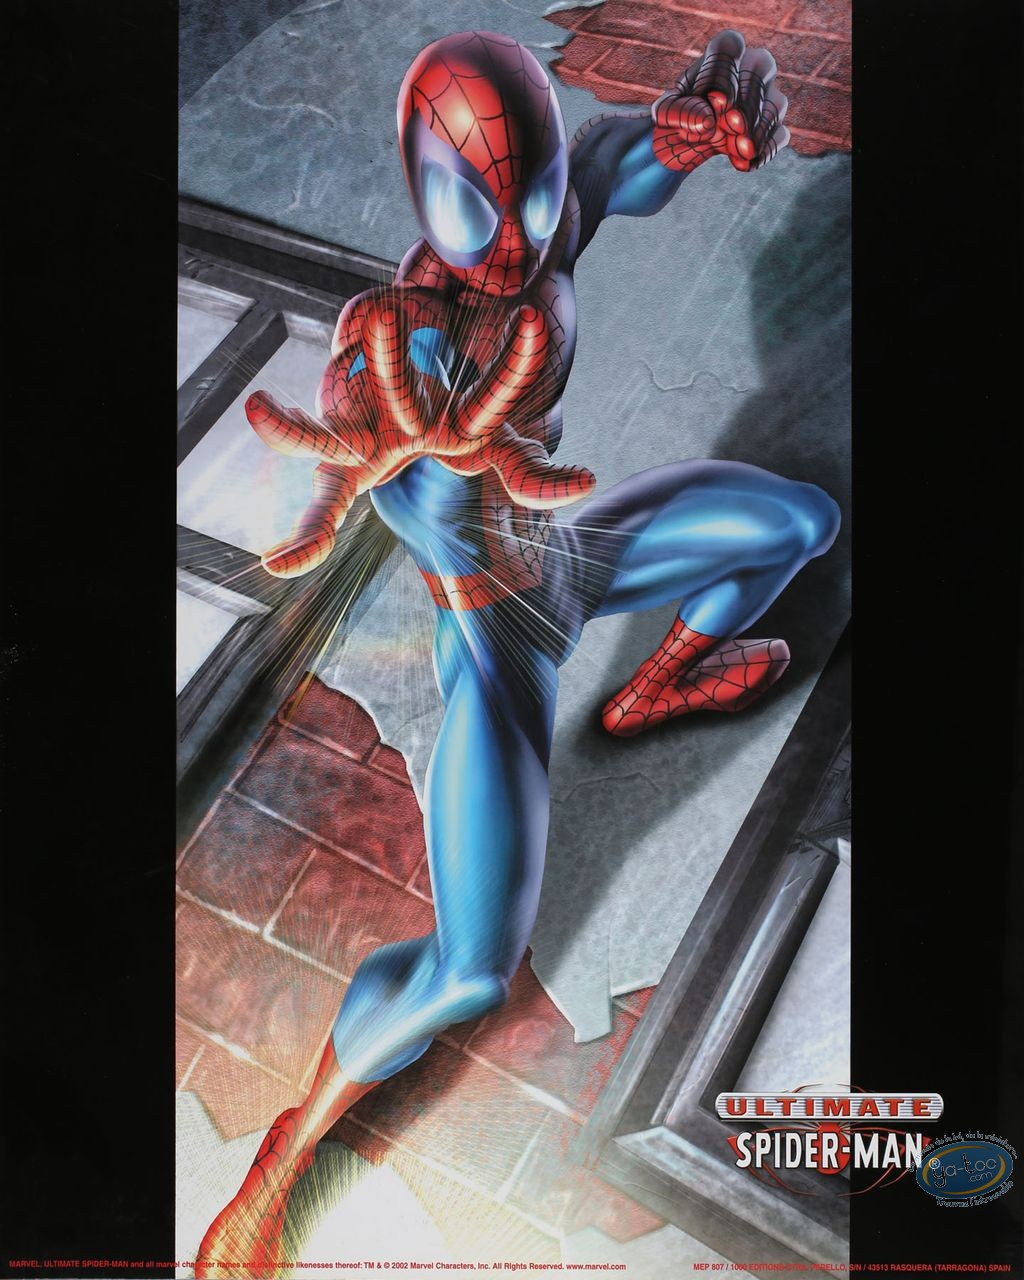 Affiche Offset, Spiderman : Mur 40X50 cm